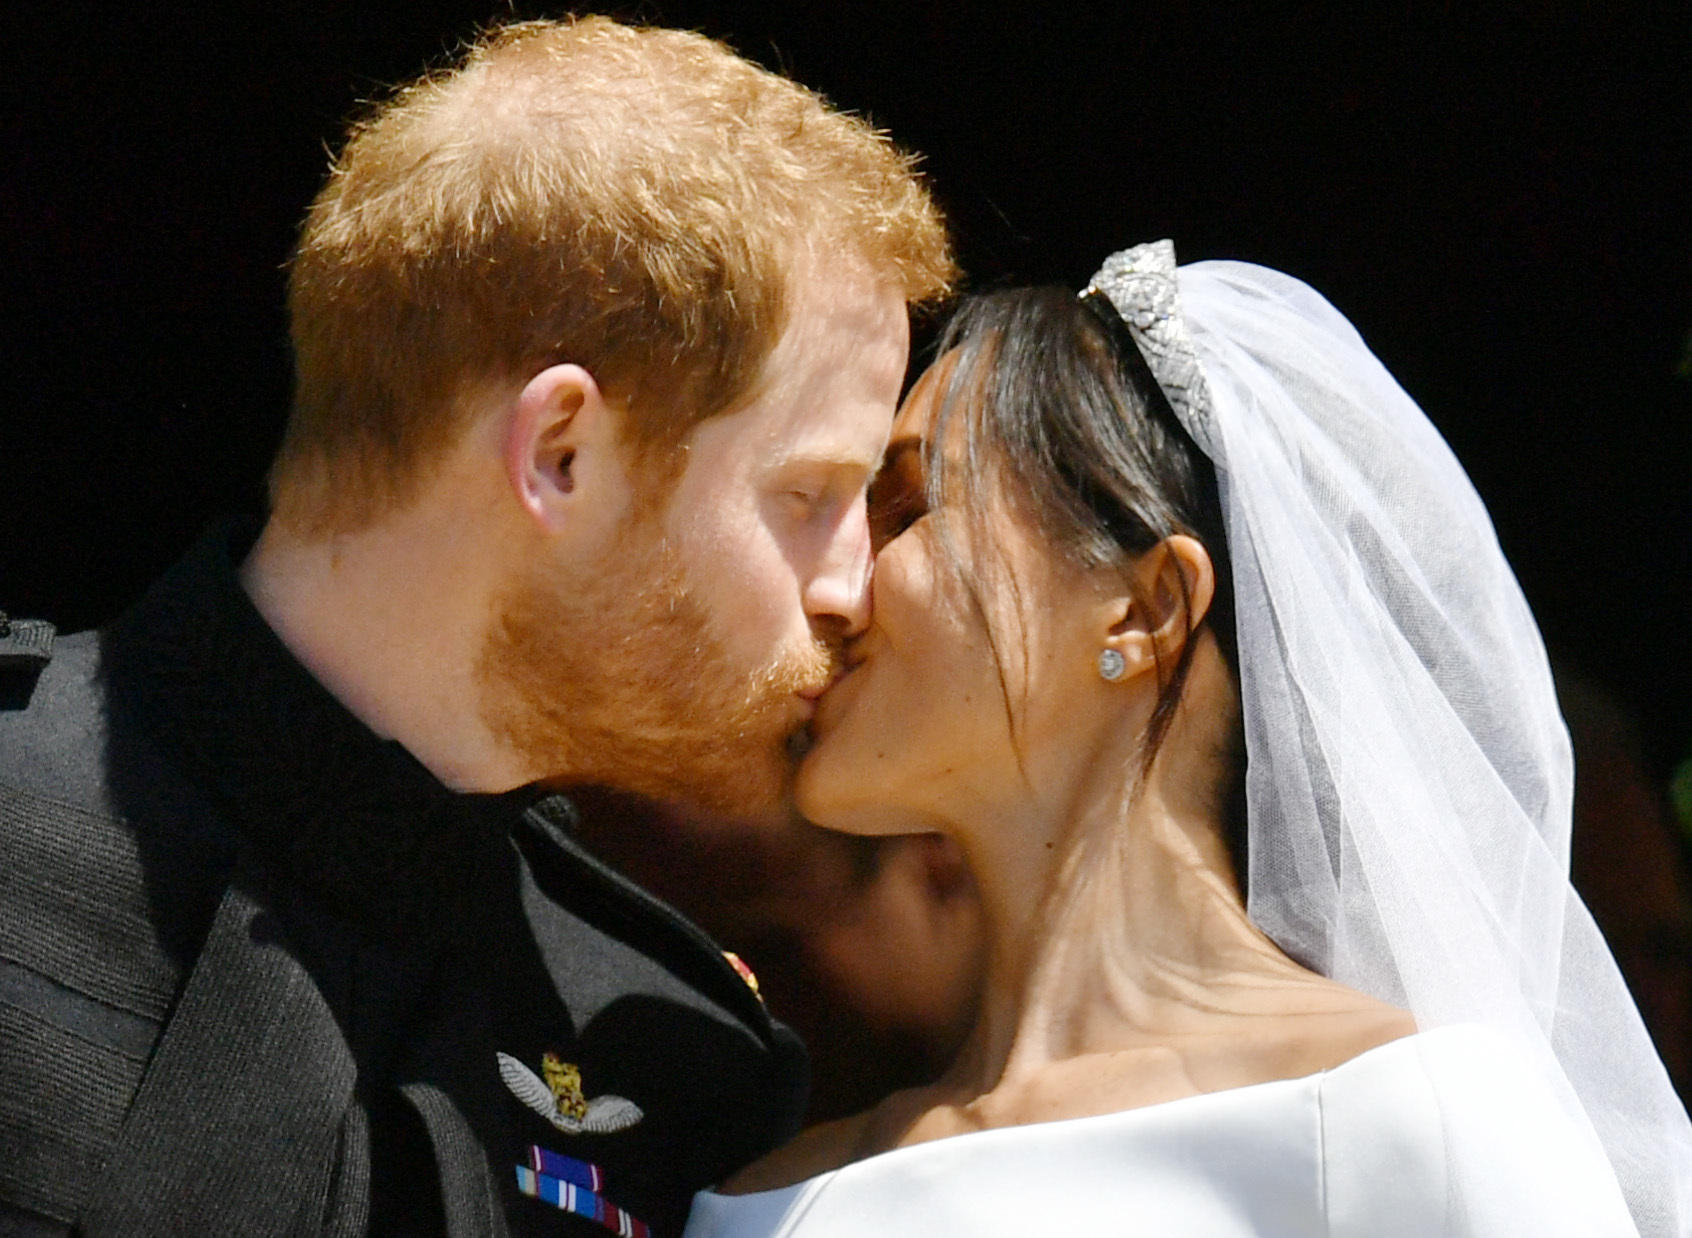 Royal Wedding Harry And Meghan.Royal Wedding Of Prince Harry And Meghan Markle Duke And Duchess Of